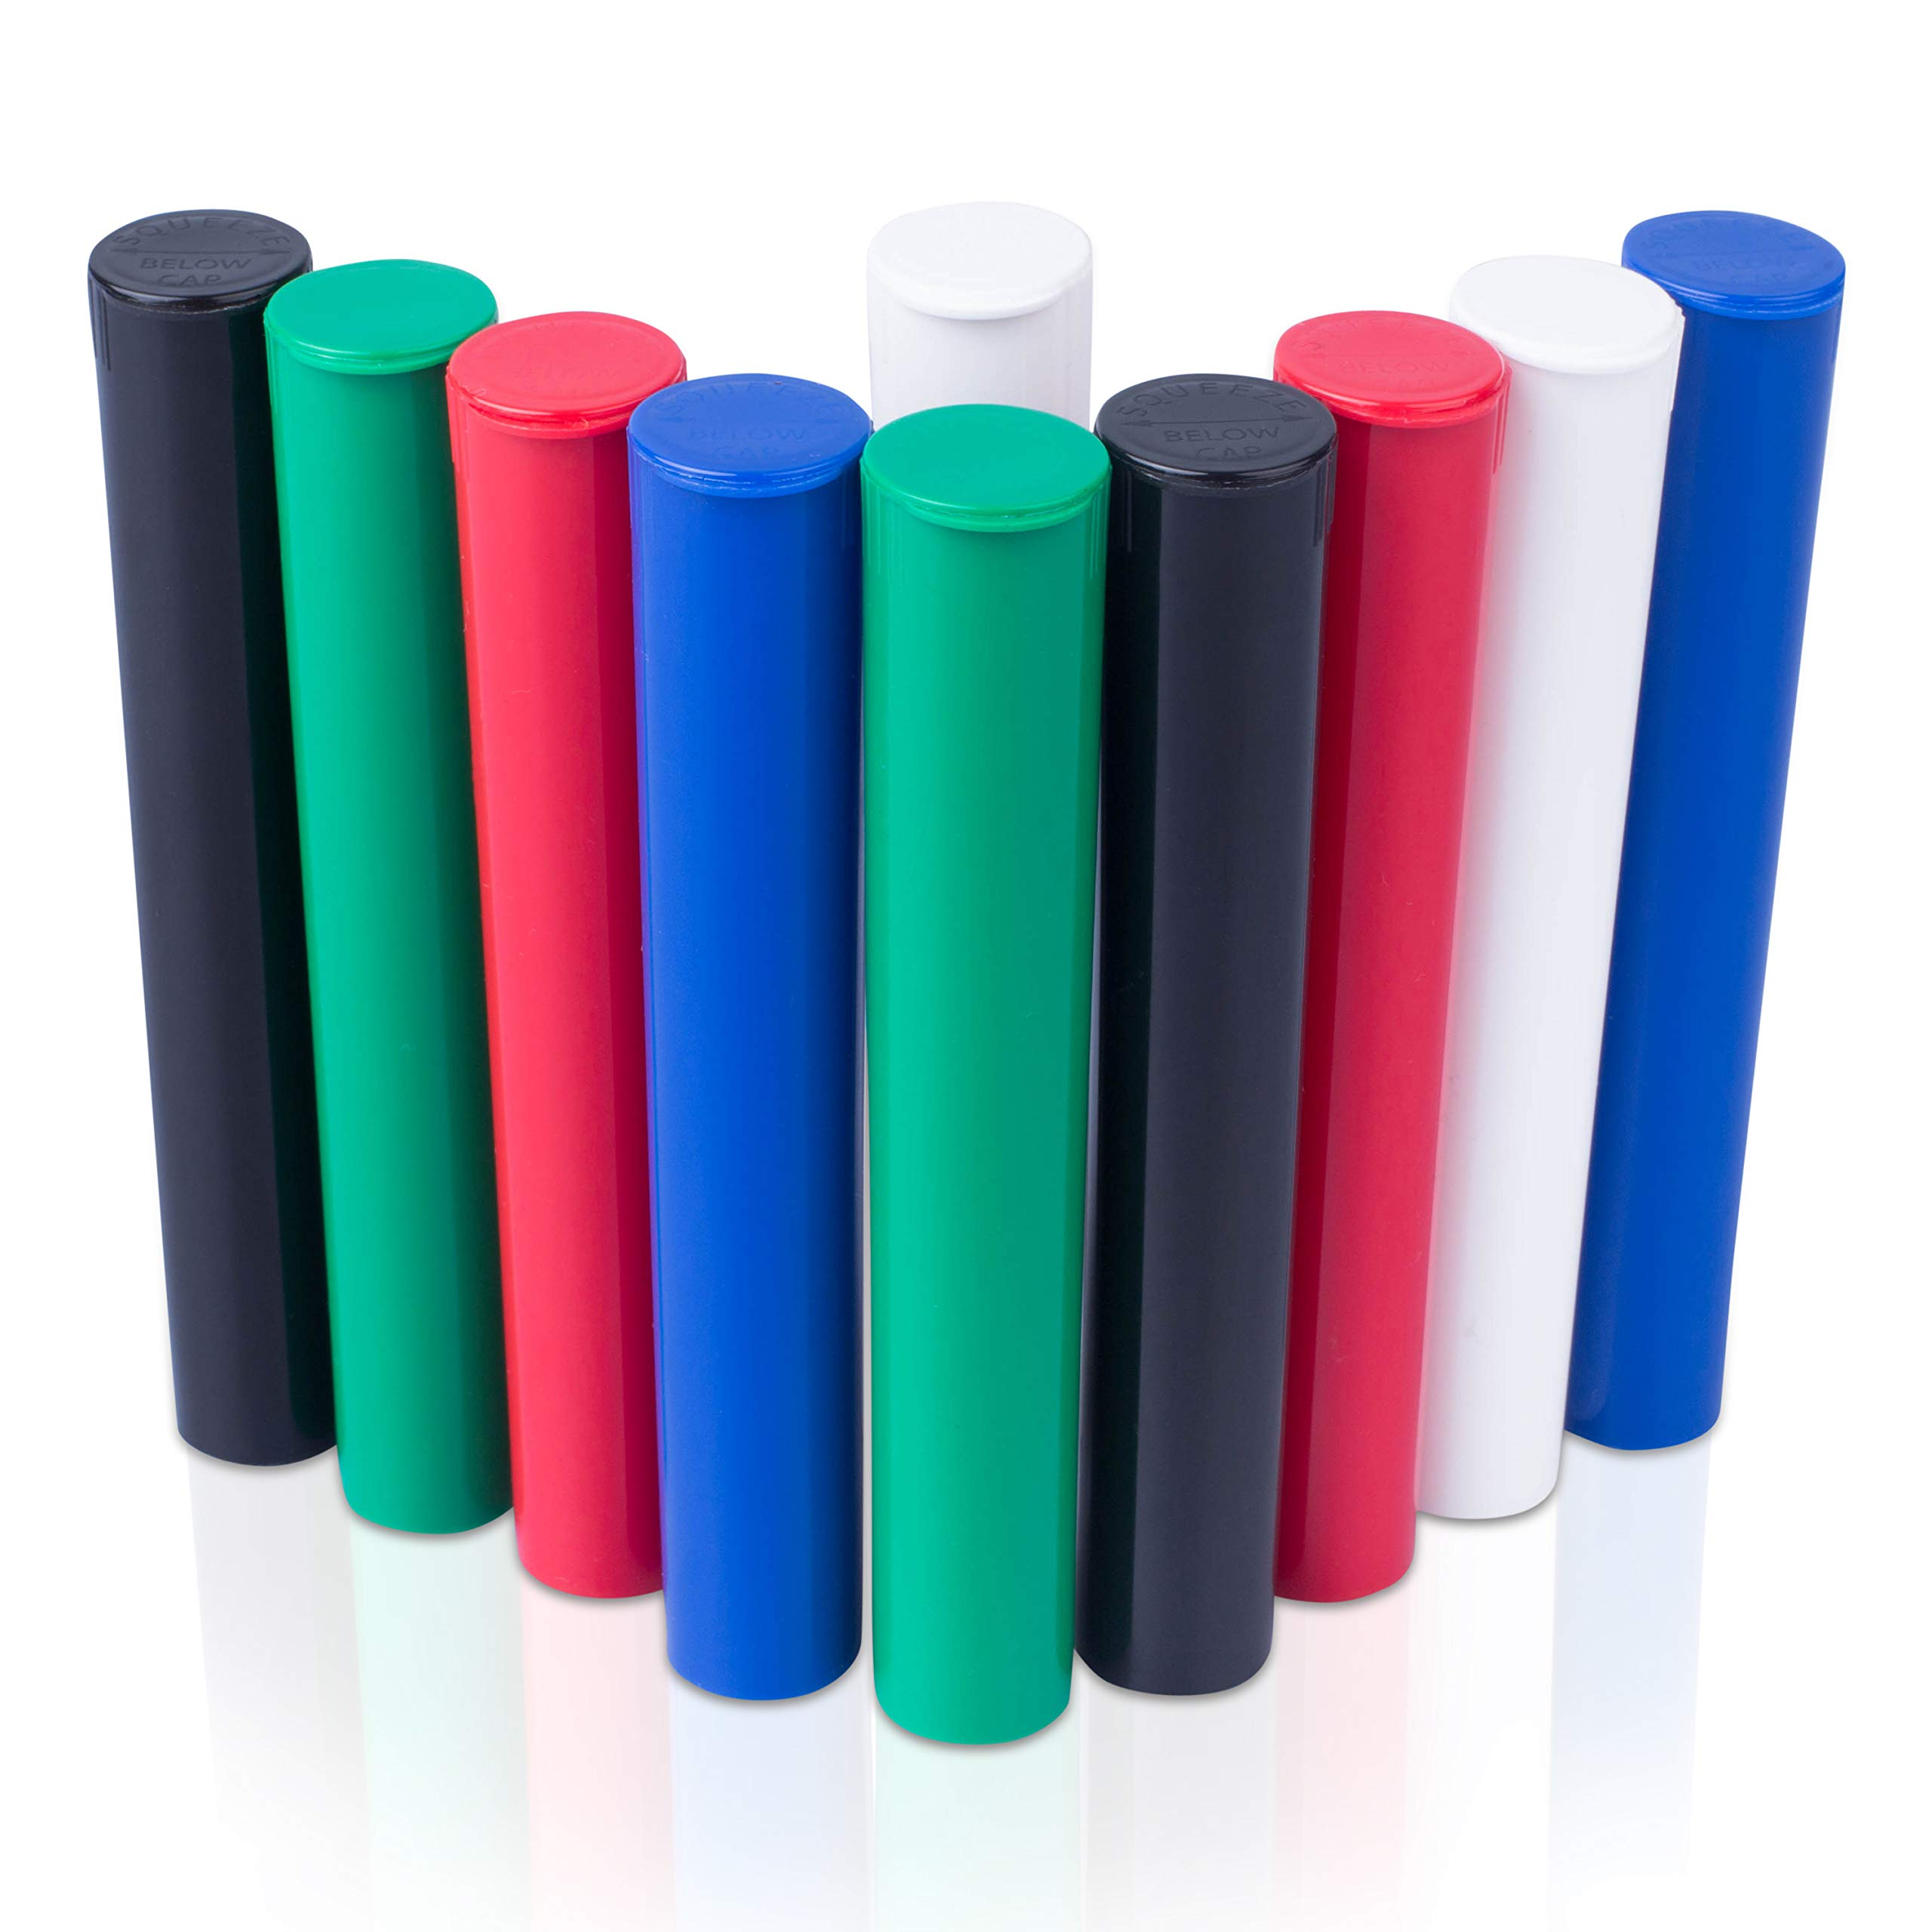 Top Class Ventures Doob Tube Smell Proof Containers - Joint Blunt Holder For Pre Rolls - Airtight Waterproof Storage Case - 4.5'' 10 Pack Mixed Colors Black Green Blue White Red by Top Class Ventures